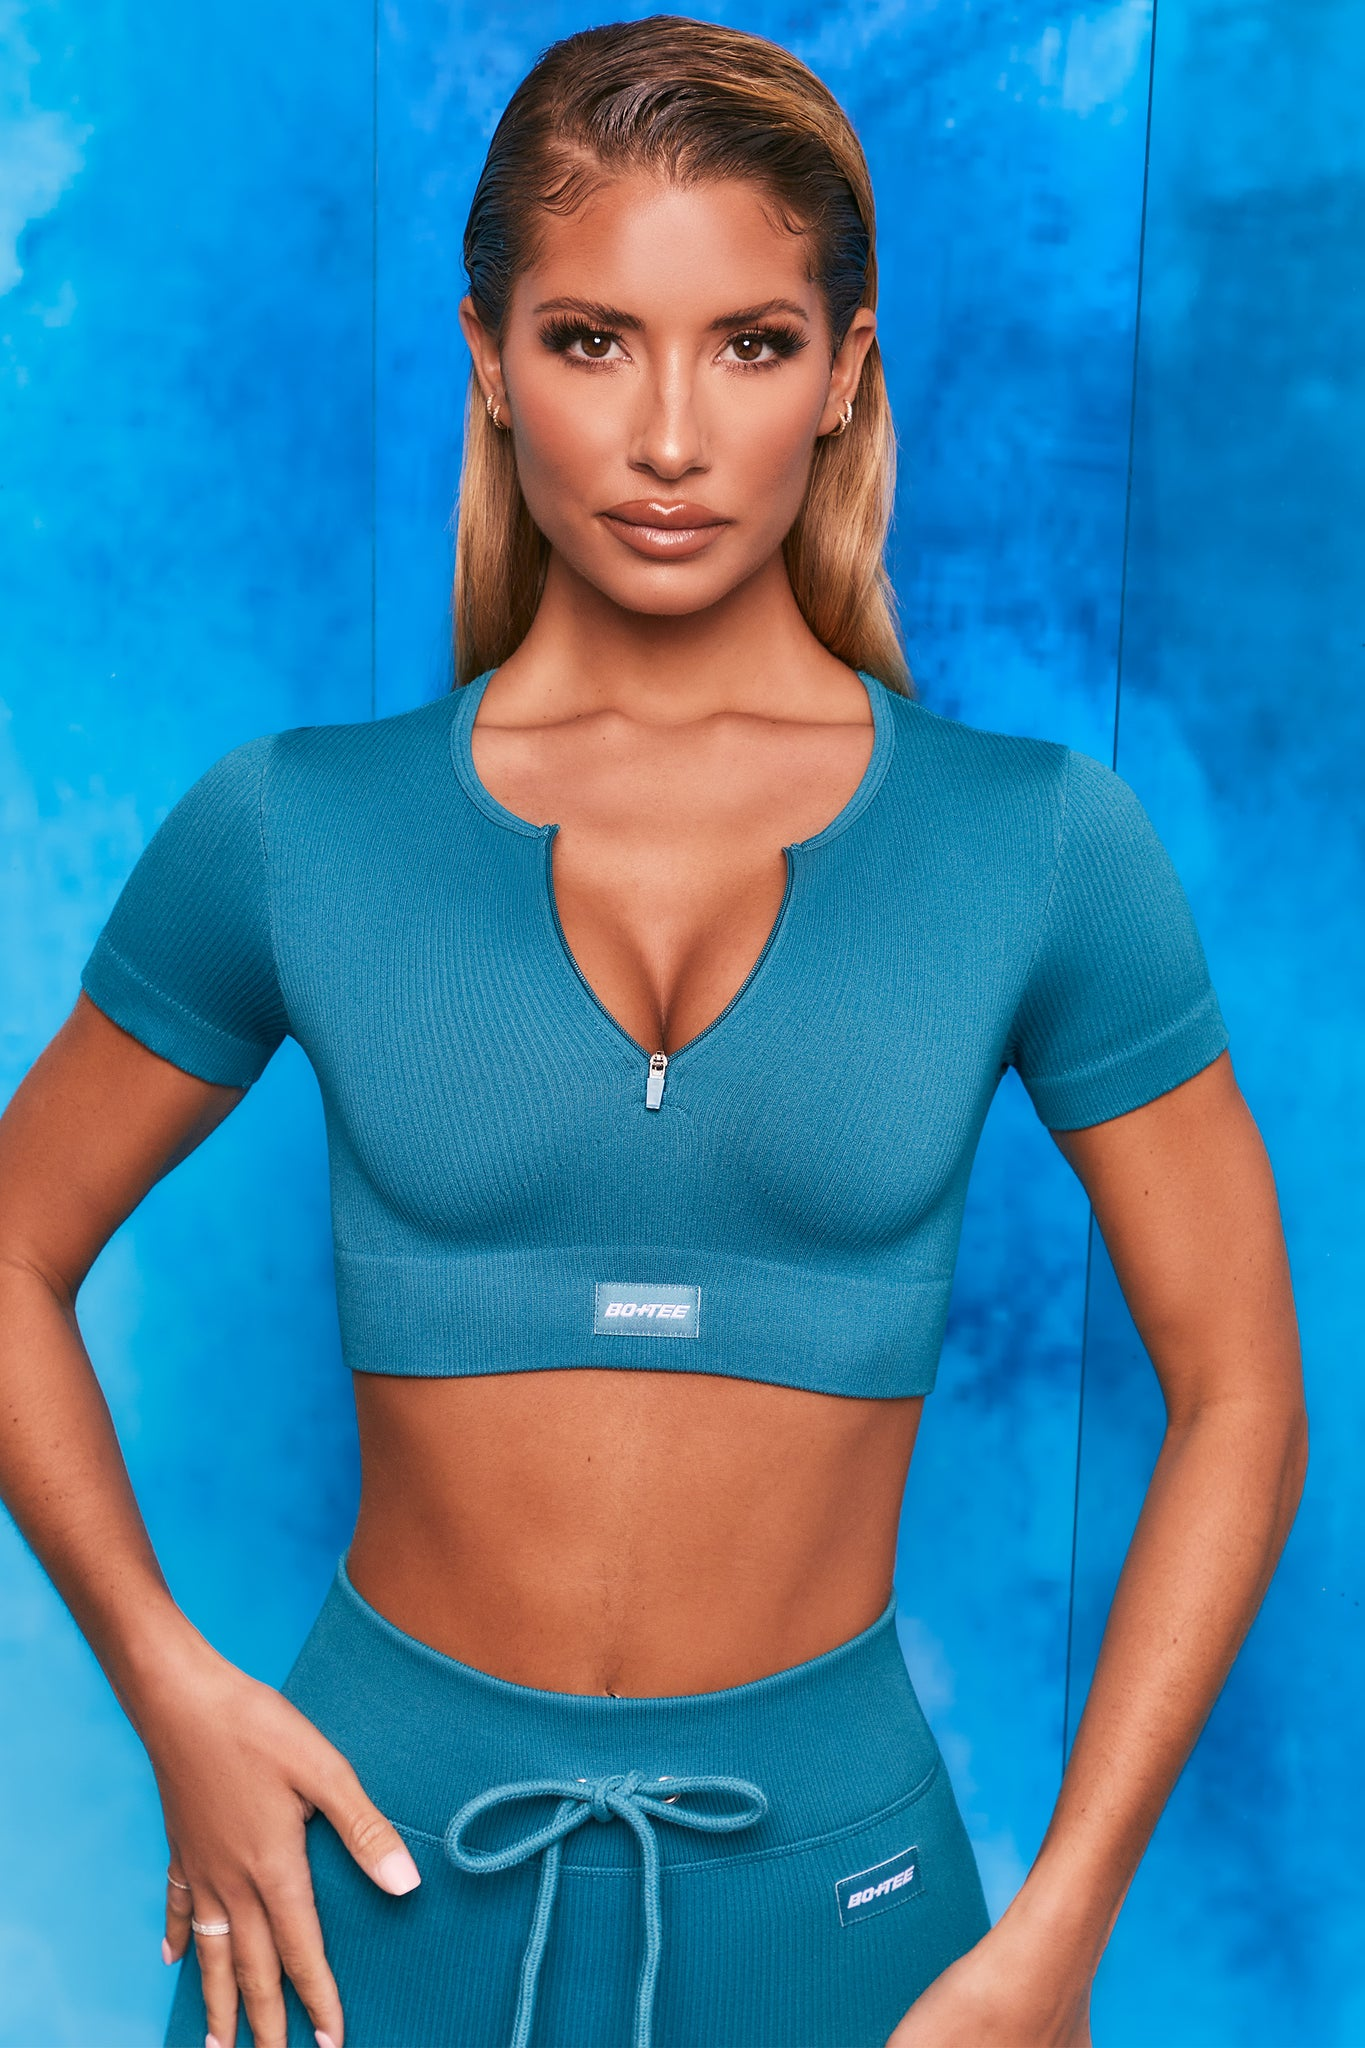 Plain teal notch neck crop top with zip front and short sleeves. Image 1 of 6